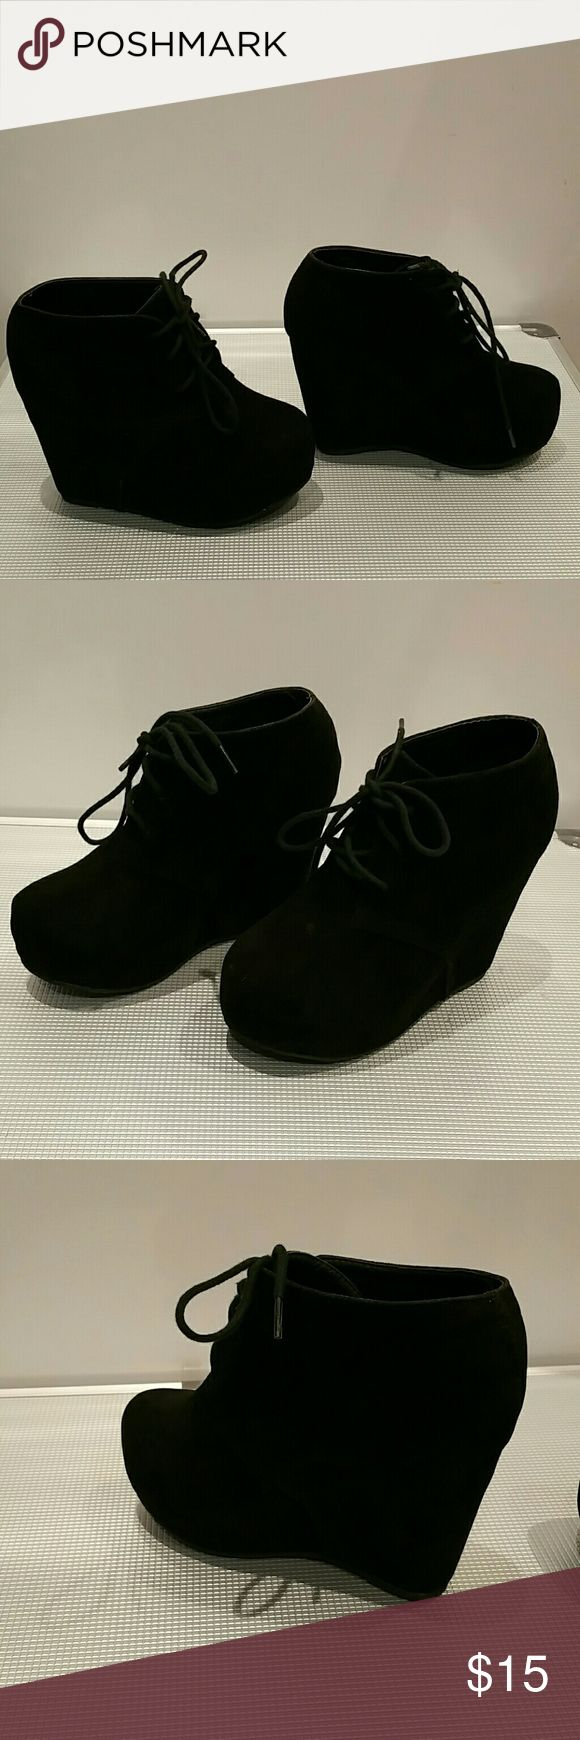 "Women's Black Suede Wedge Boots Women's suede round toe lace up platform wedge high heels  ankle boot. Heels: 4""  Pre-owned~good condition/few minor flaws/functional. No box included on shipment Beyond Shoes Lace Up Boots"